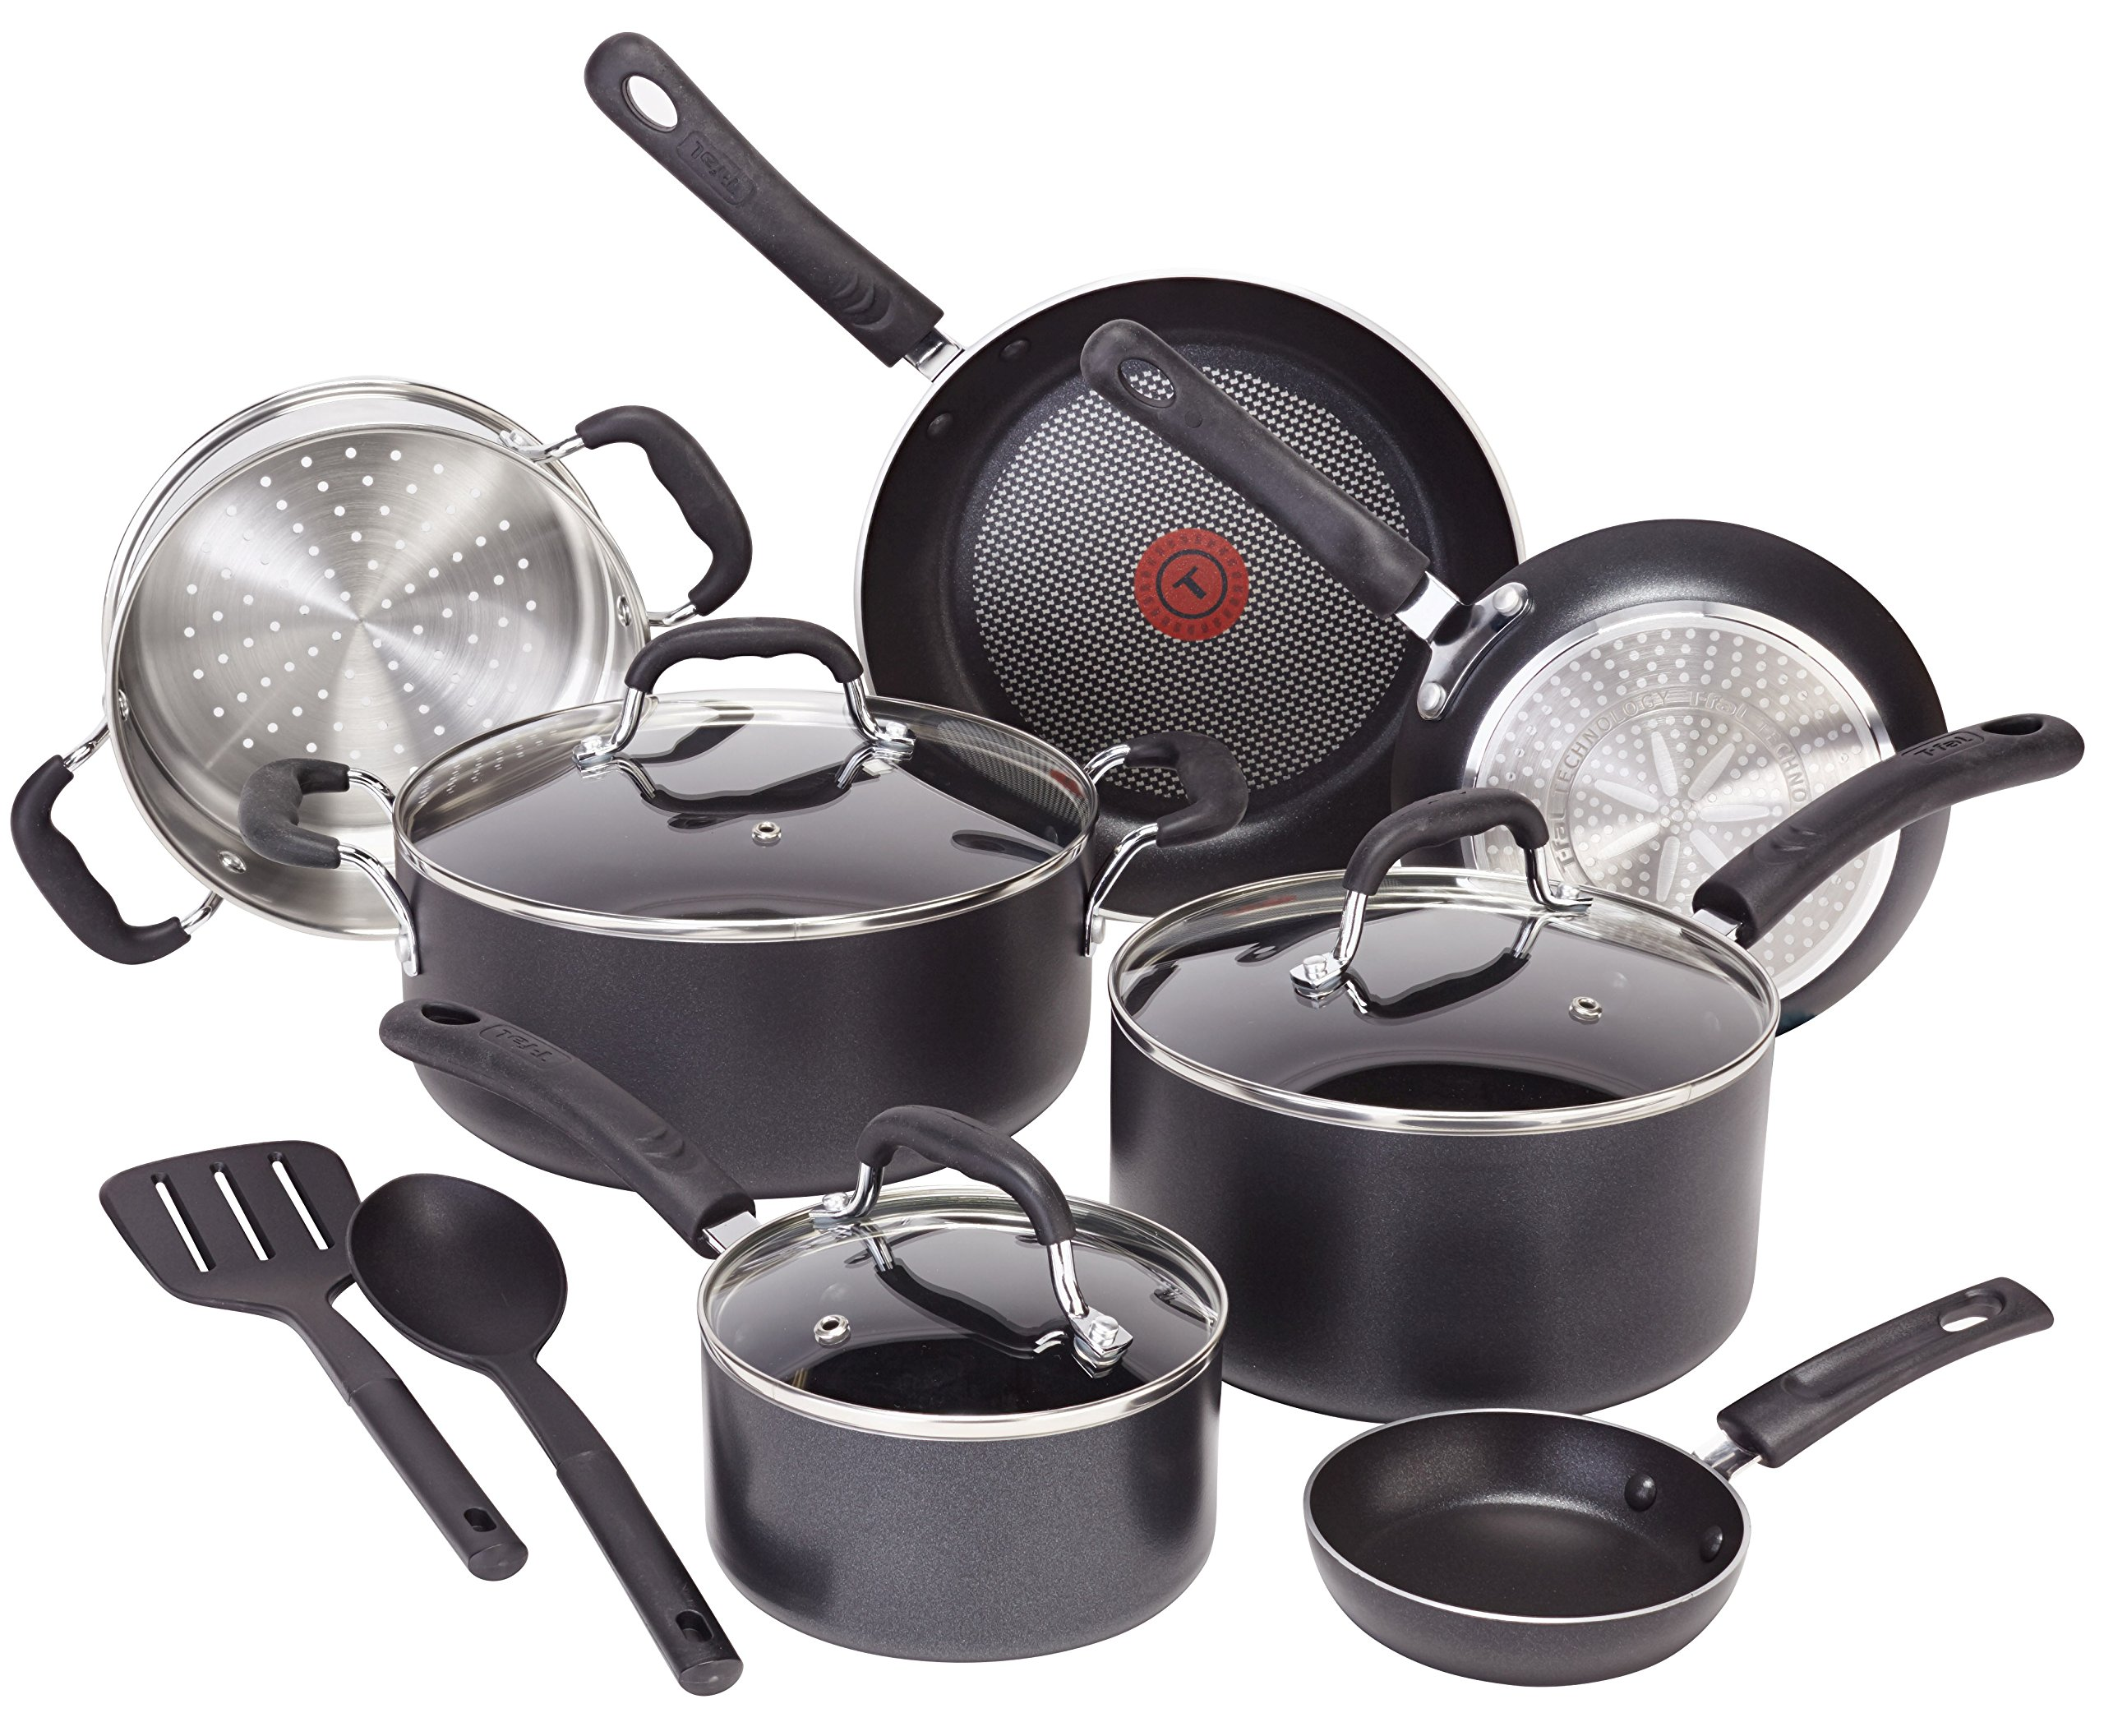 T-fal-C530SC-Signature-Nonstick-Expert-Thermo-Spot-Heat-Indicator-Dishwasher-Safe-Cookware-Set-12-Piece-Black